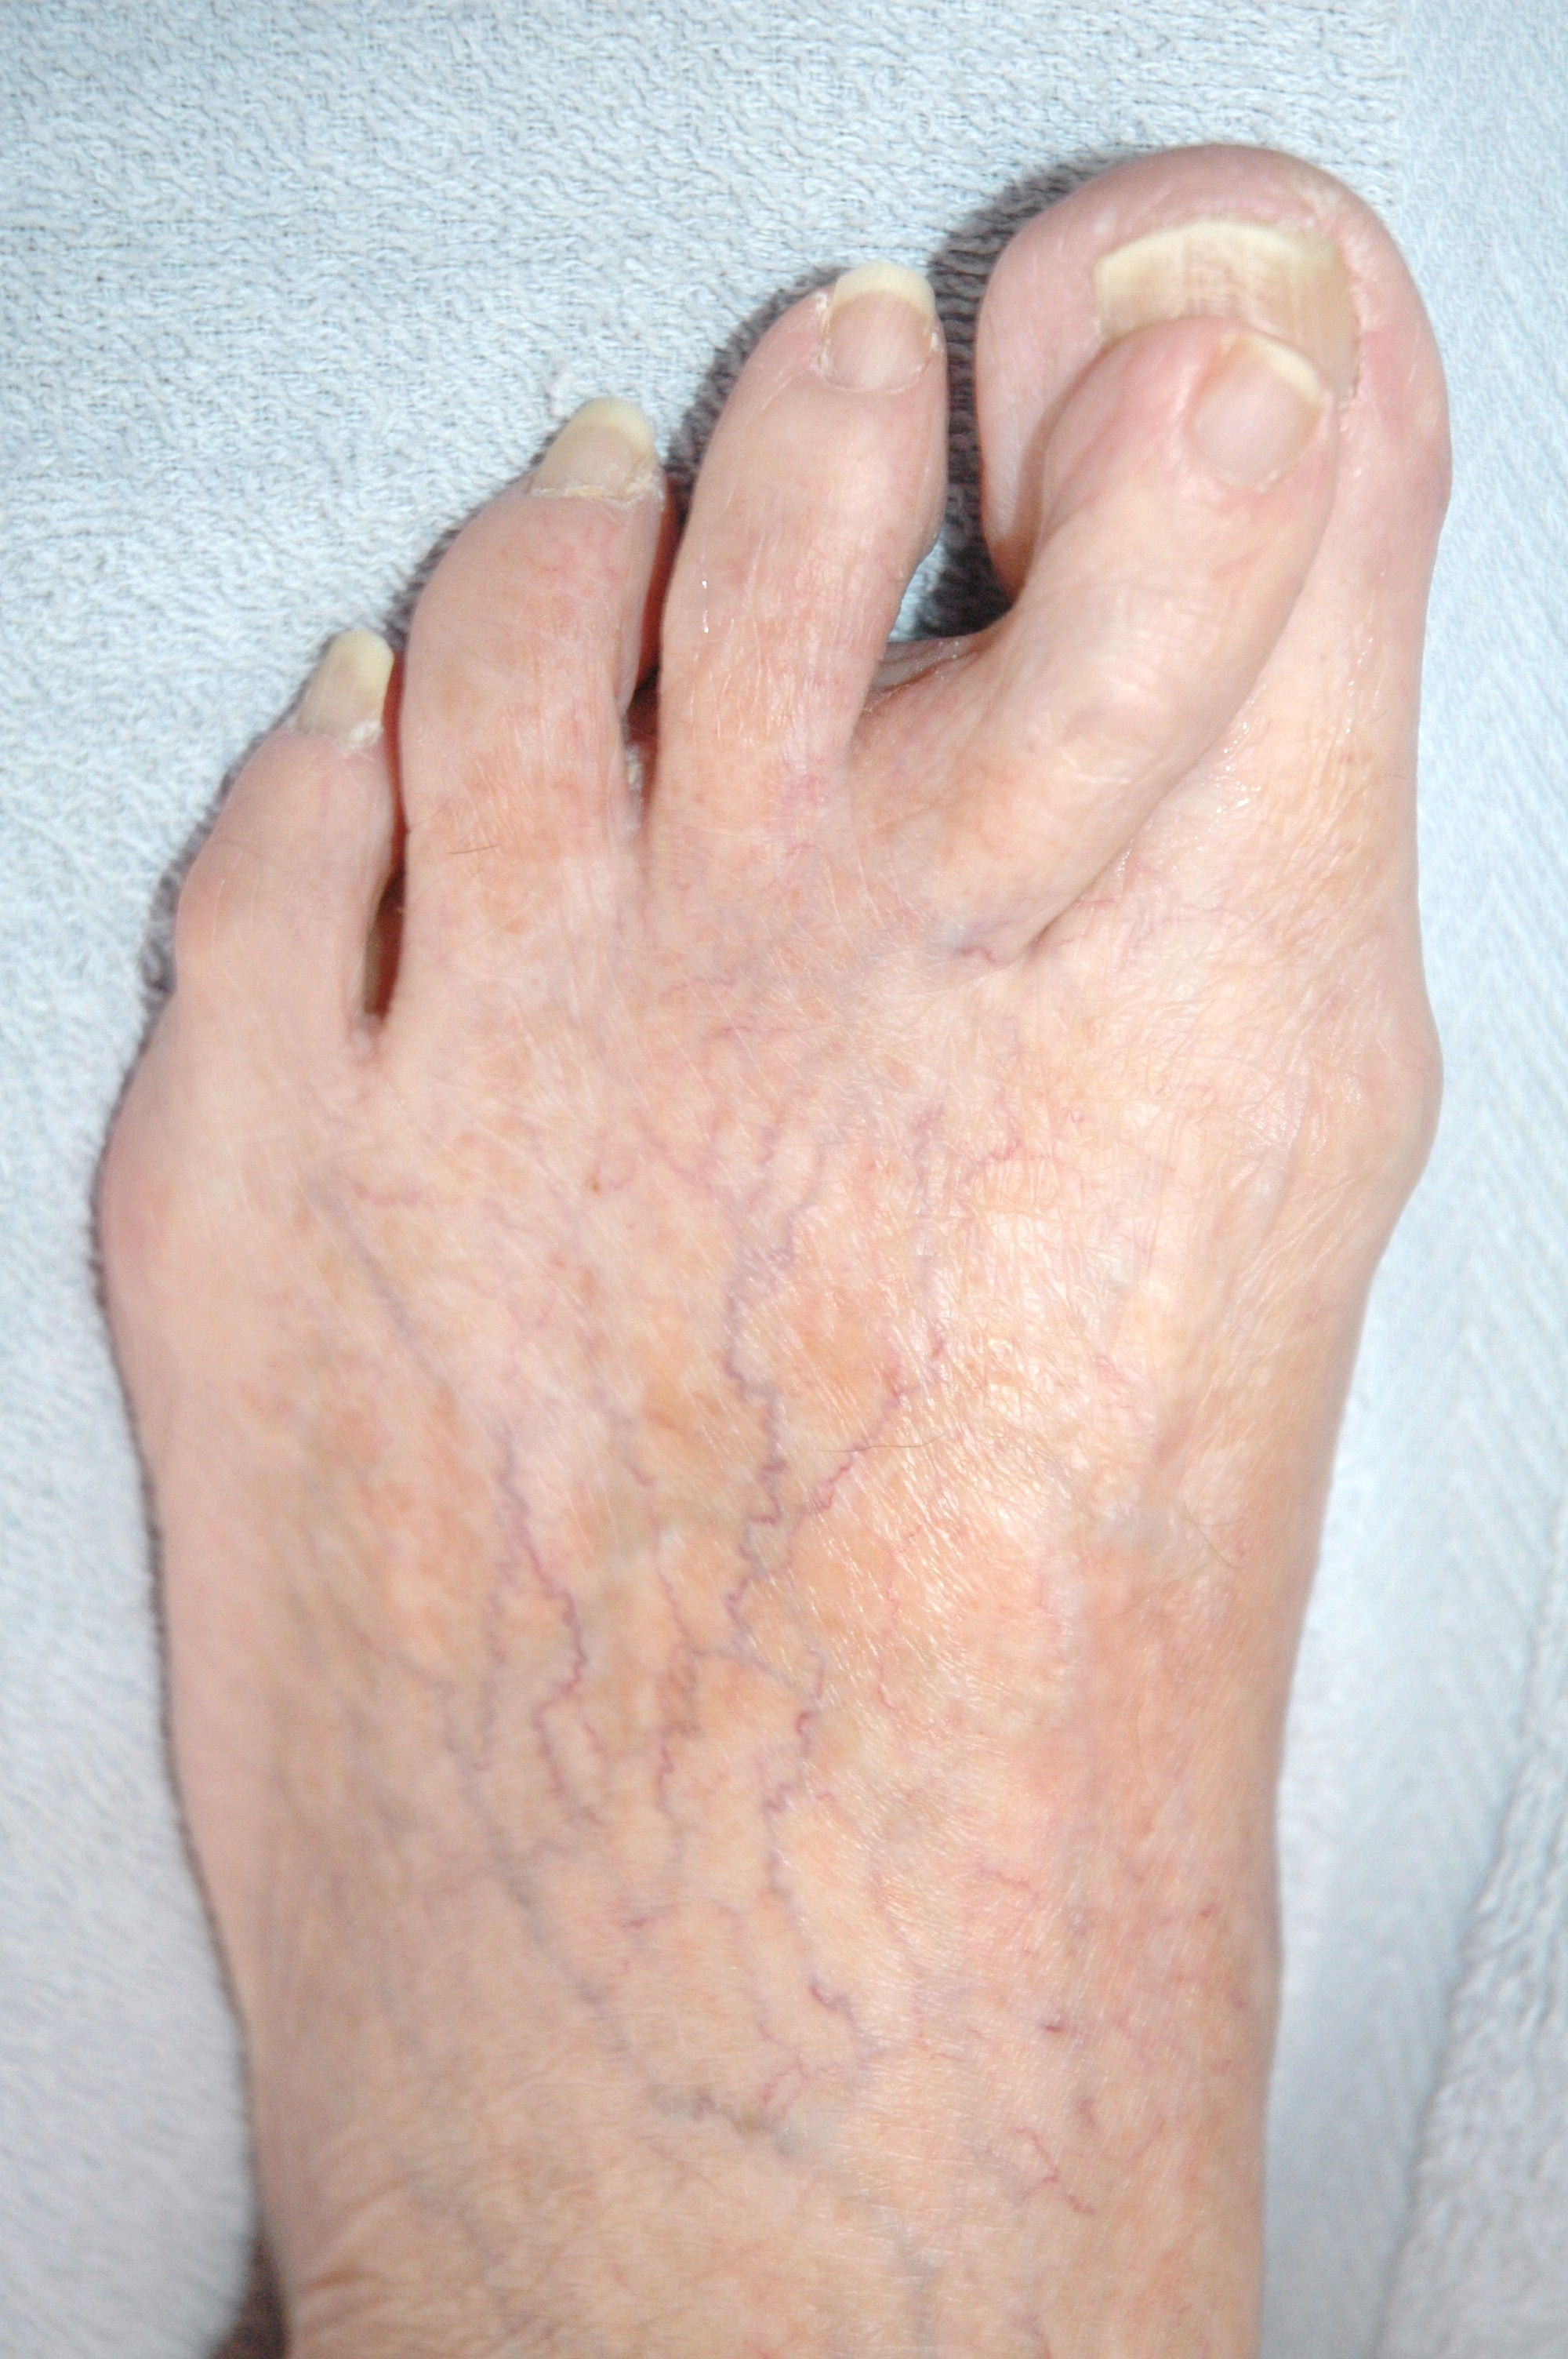 Mortons toe what is it what causes it how to treat it bunion solutioingenieria Image collections